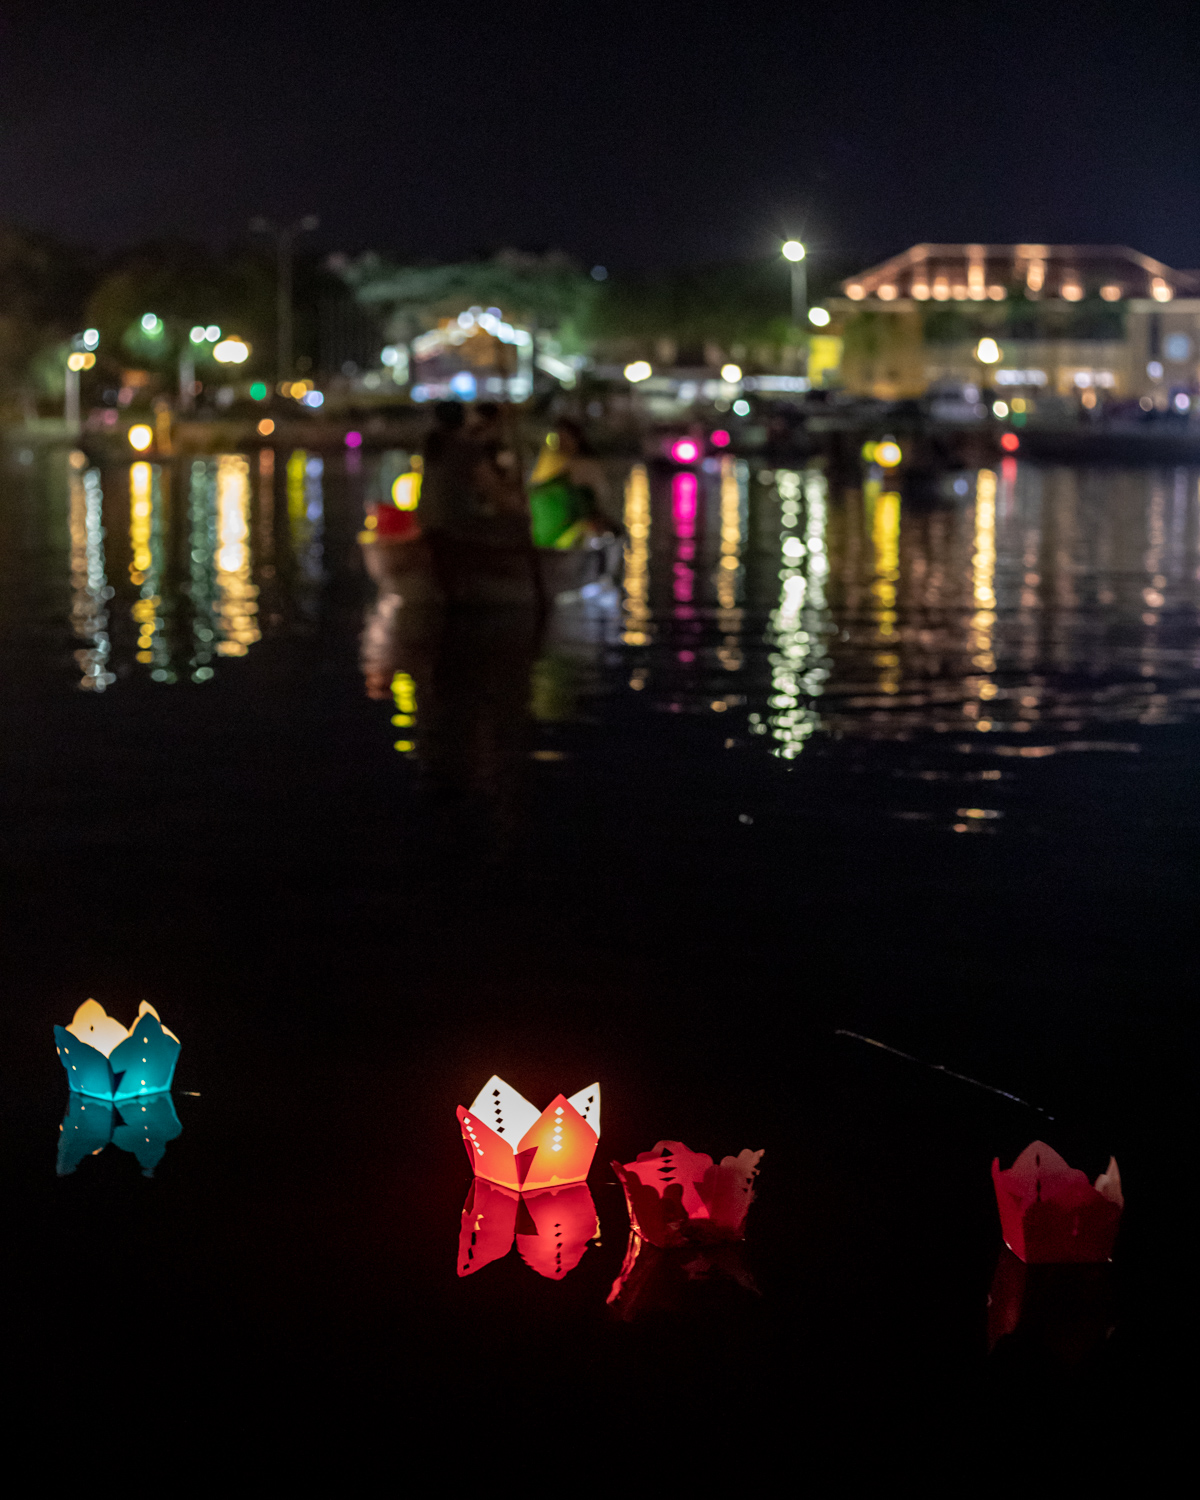 The lanterns in the water at night - not during the lantern festival